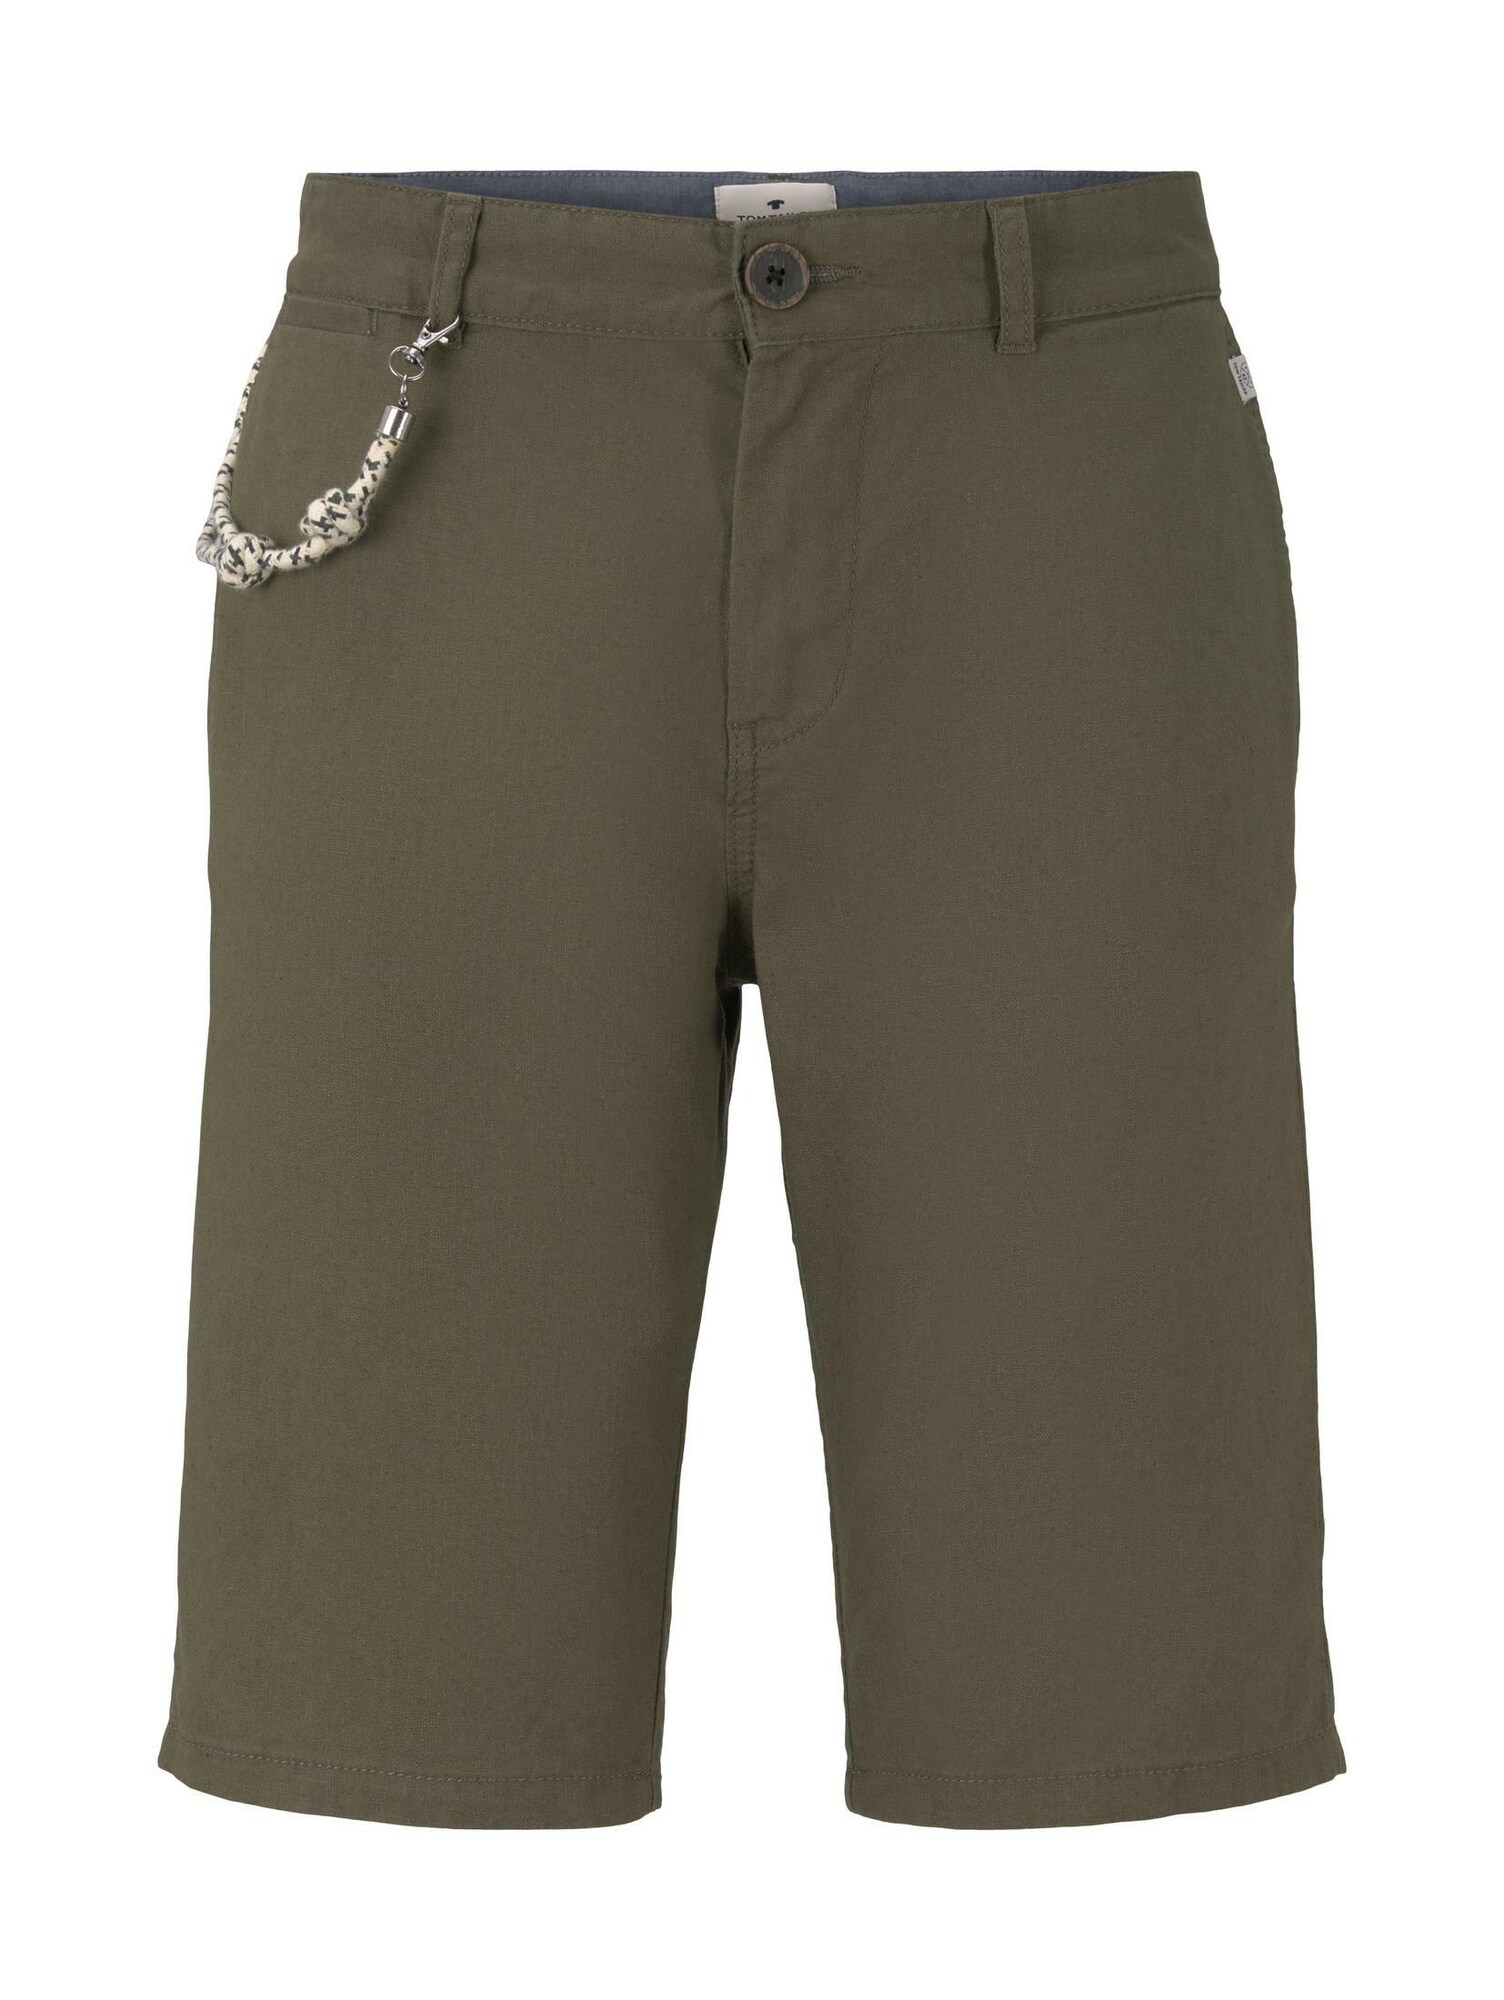 TOM TAILOR Chino kalhoty khaki Tom Tailor